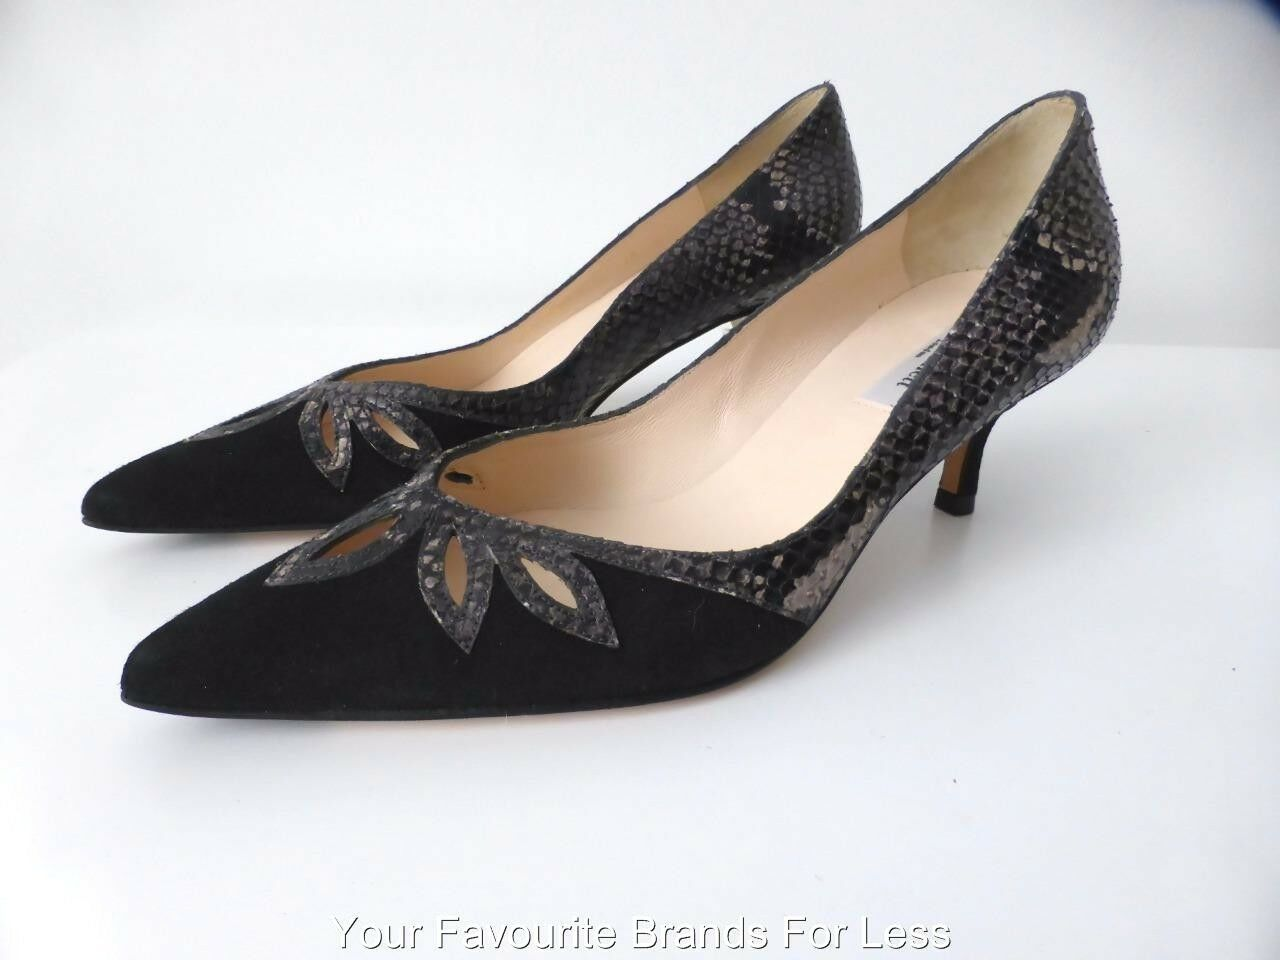 L K BENNETT LONDON Shoes NEW rrp $350 Size 36 Leather Court